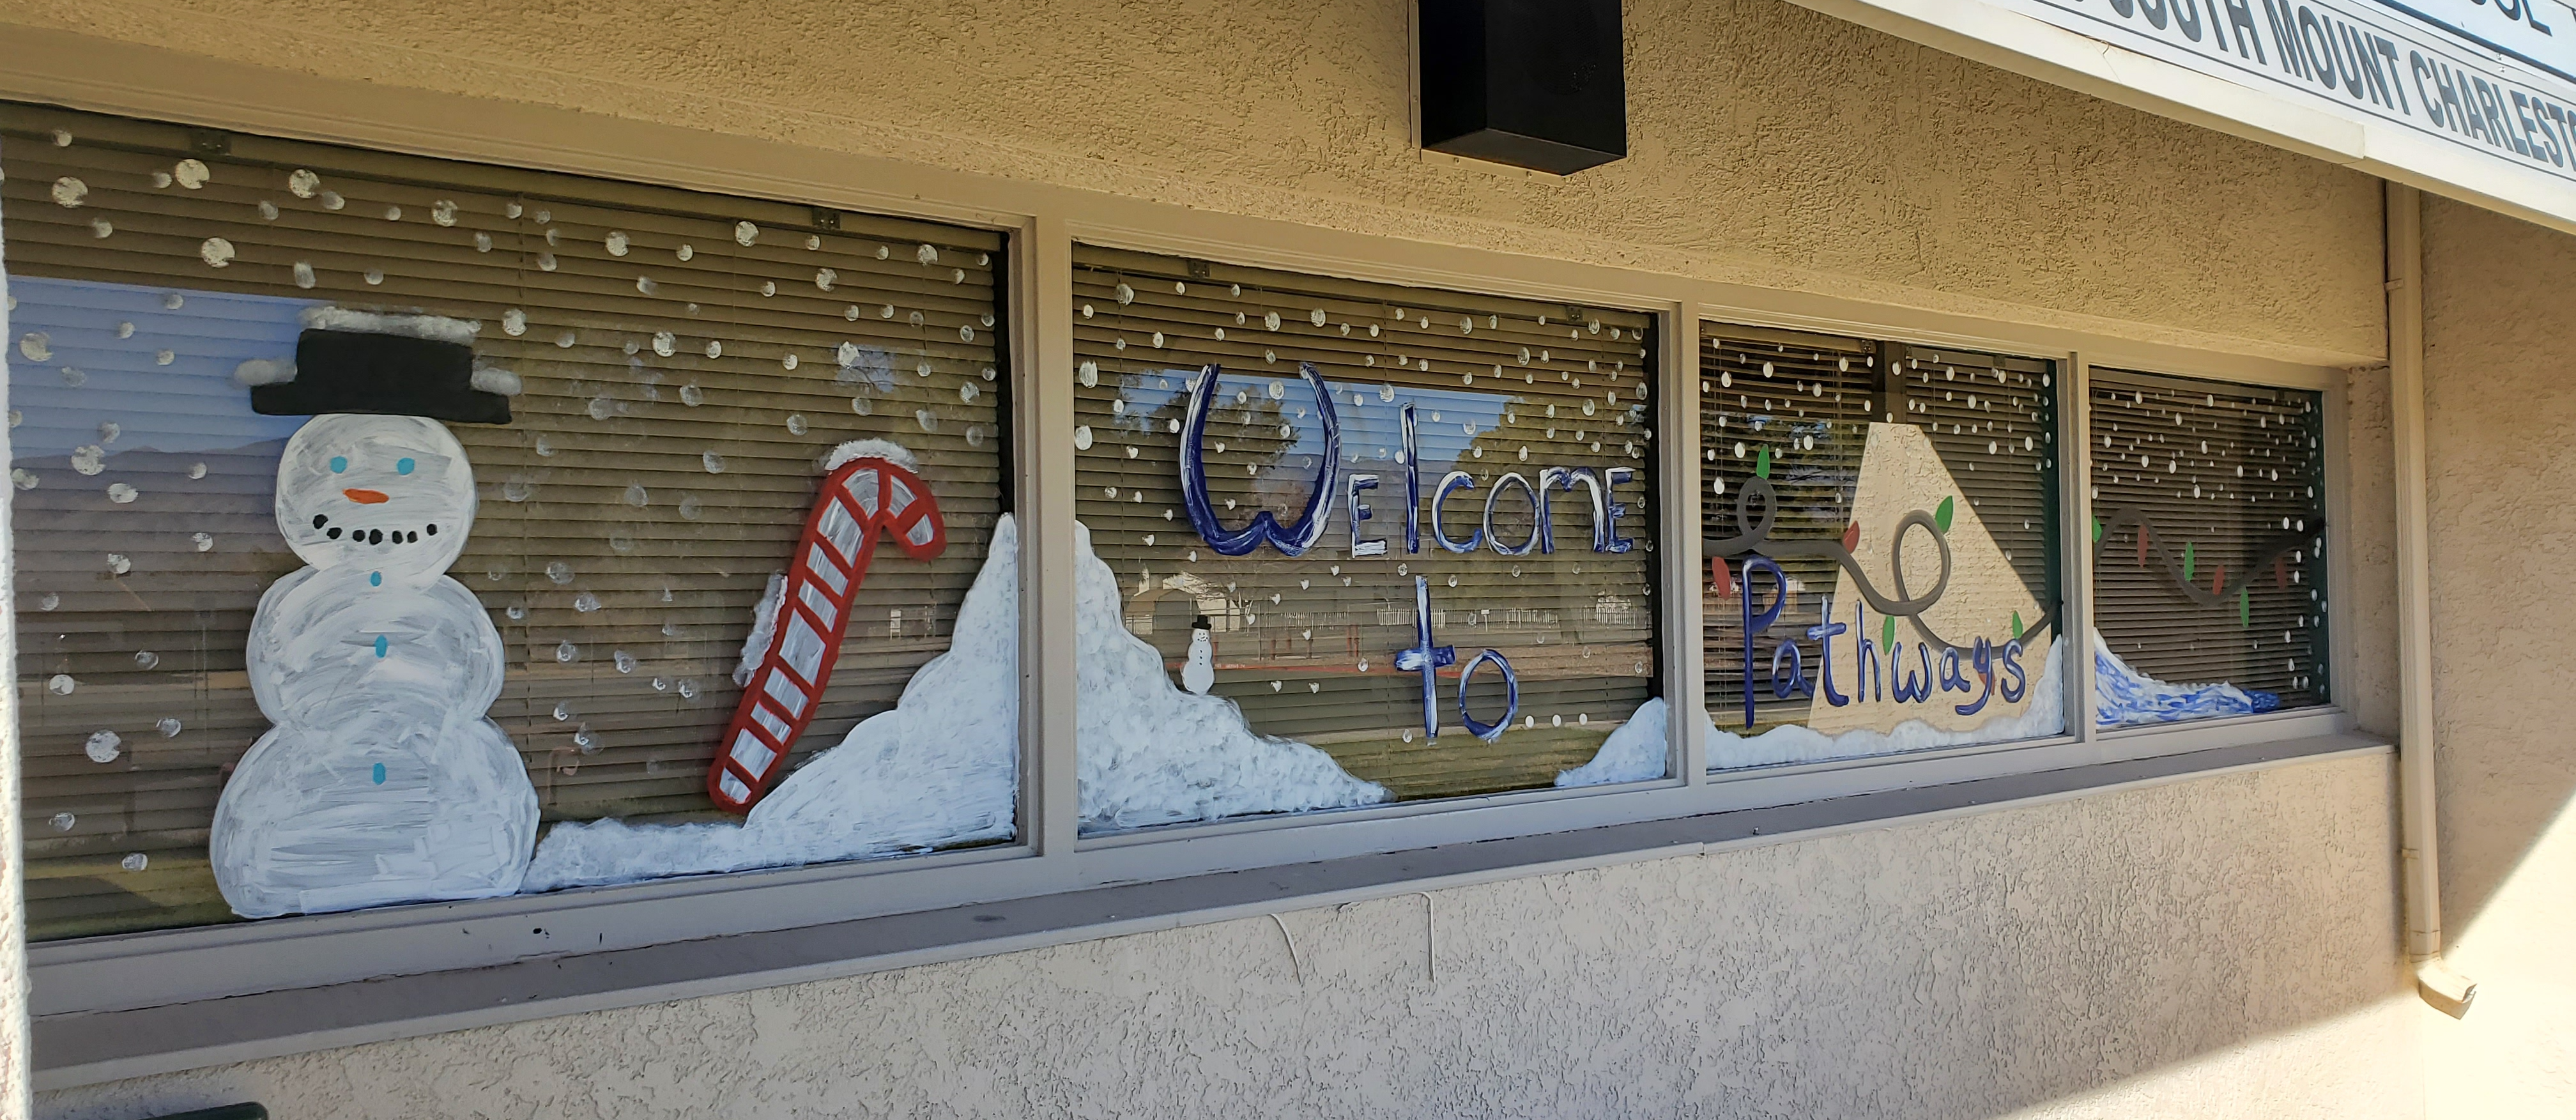 Window front with winter motifs. Drifted snow banks, a snow man, a candy cane, and the the words 'welcome to pathways' in blue script